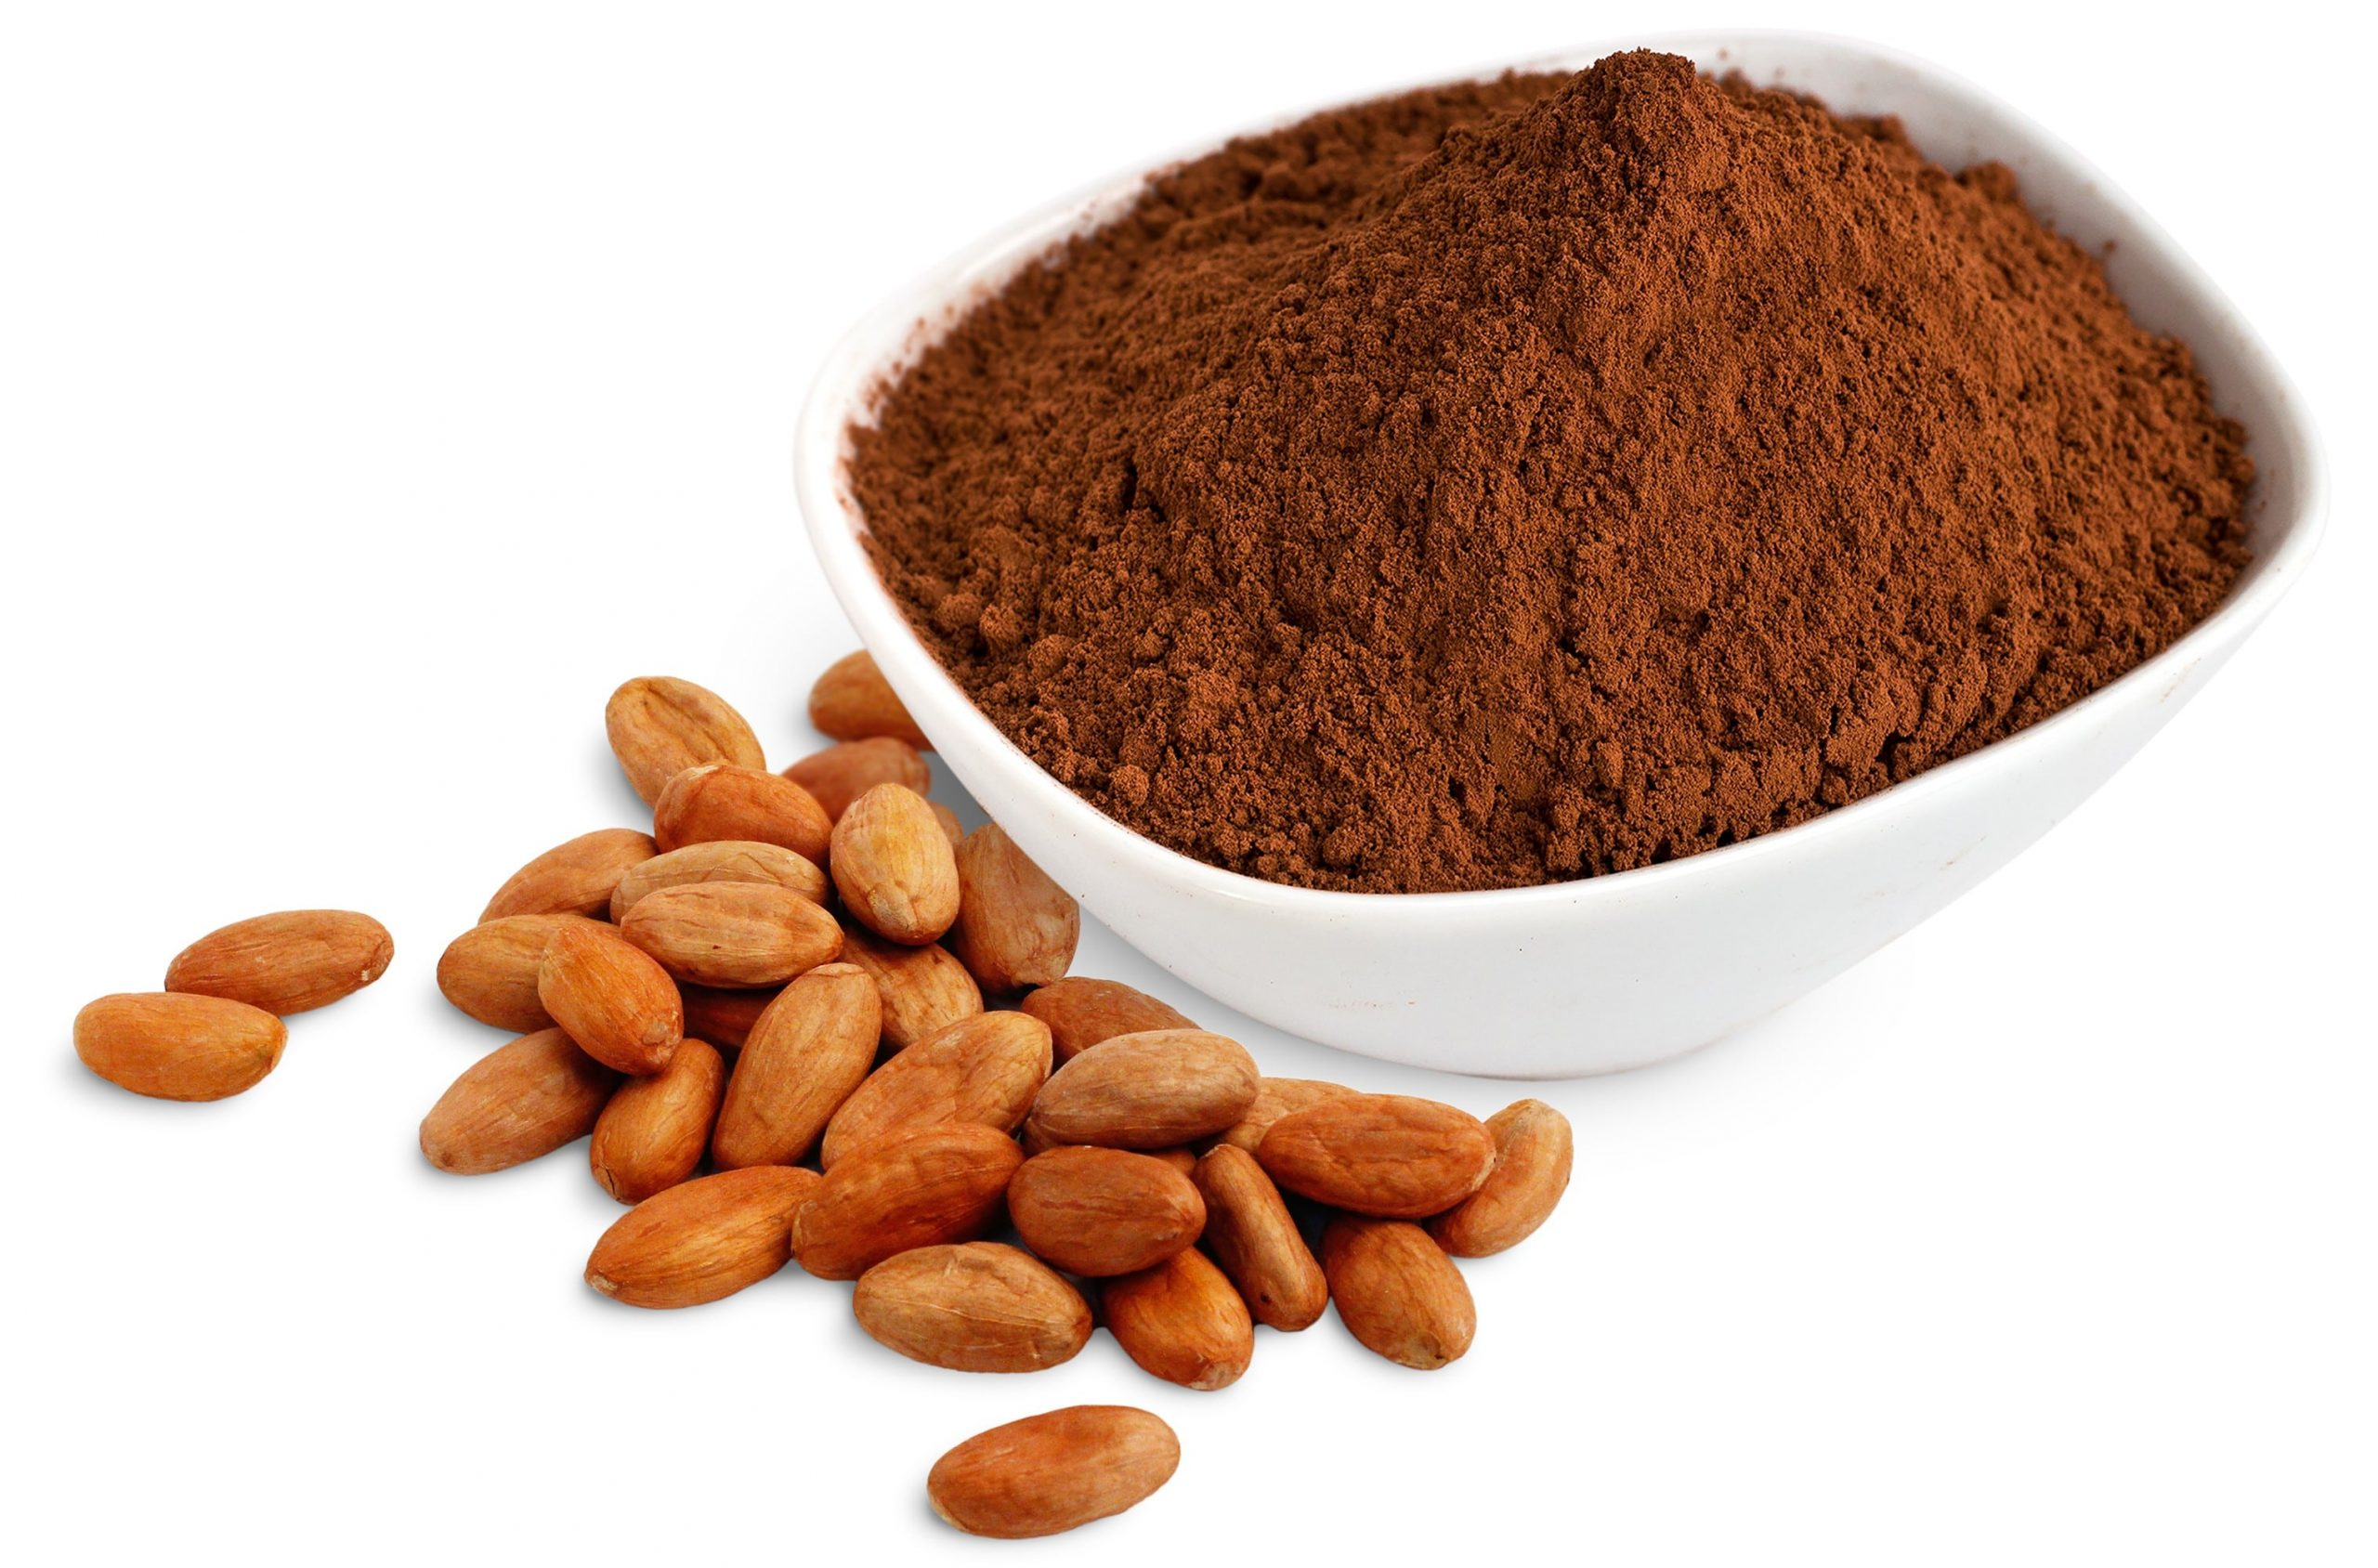 Cocoa for making beverages-powder and Chocolate